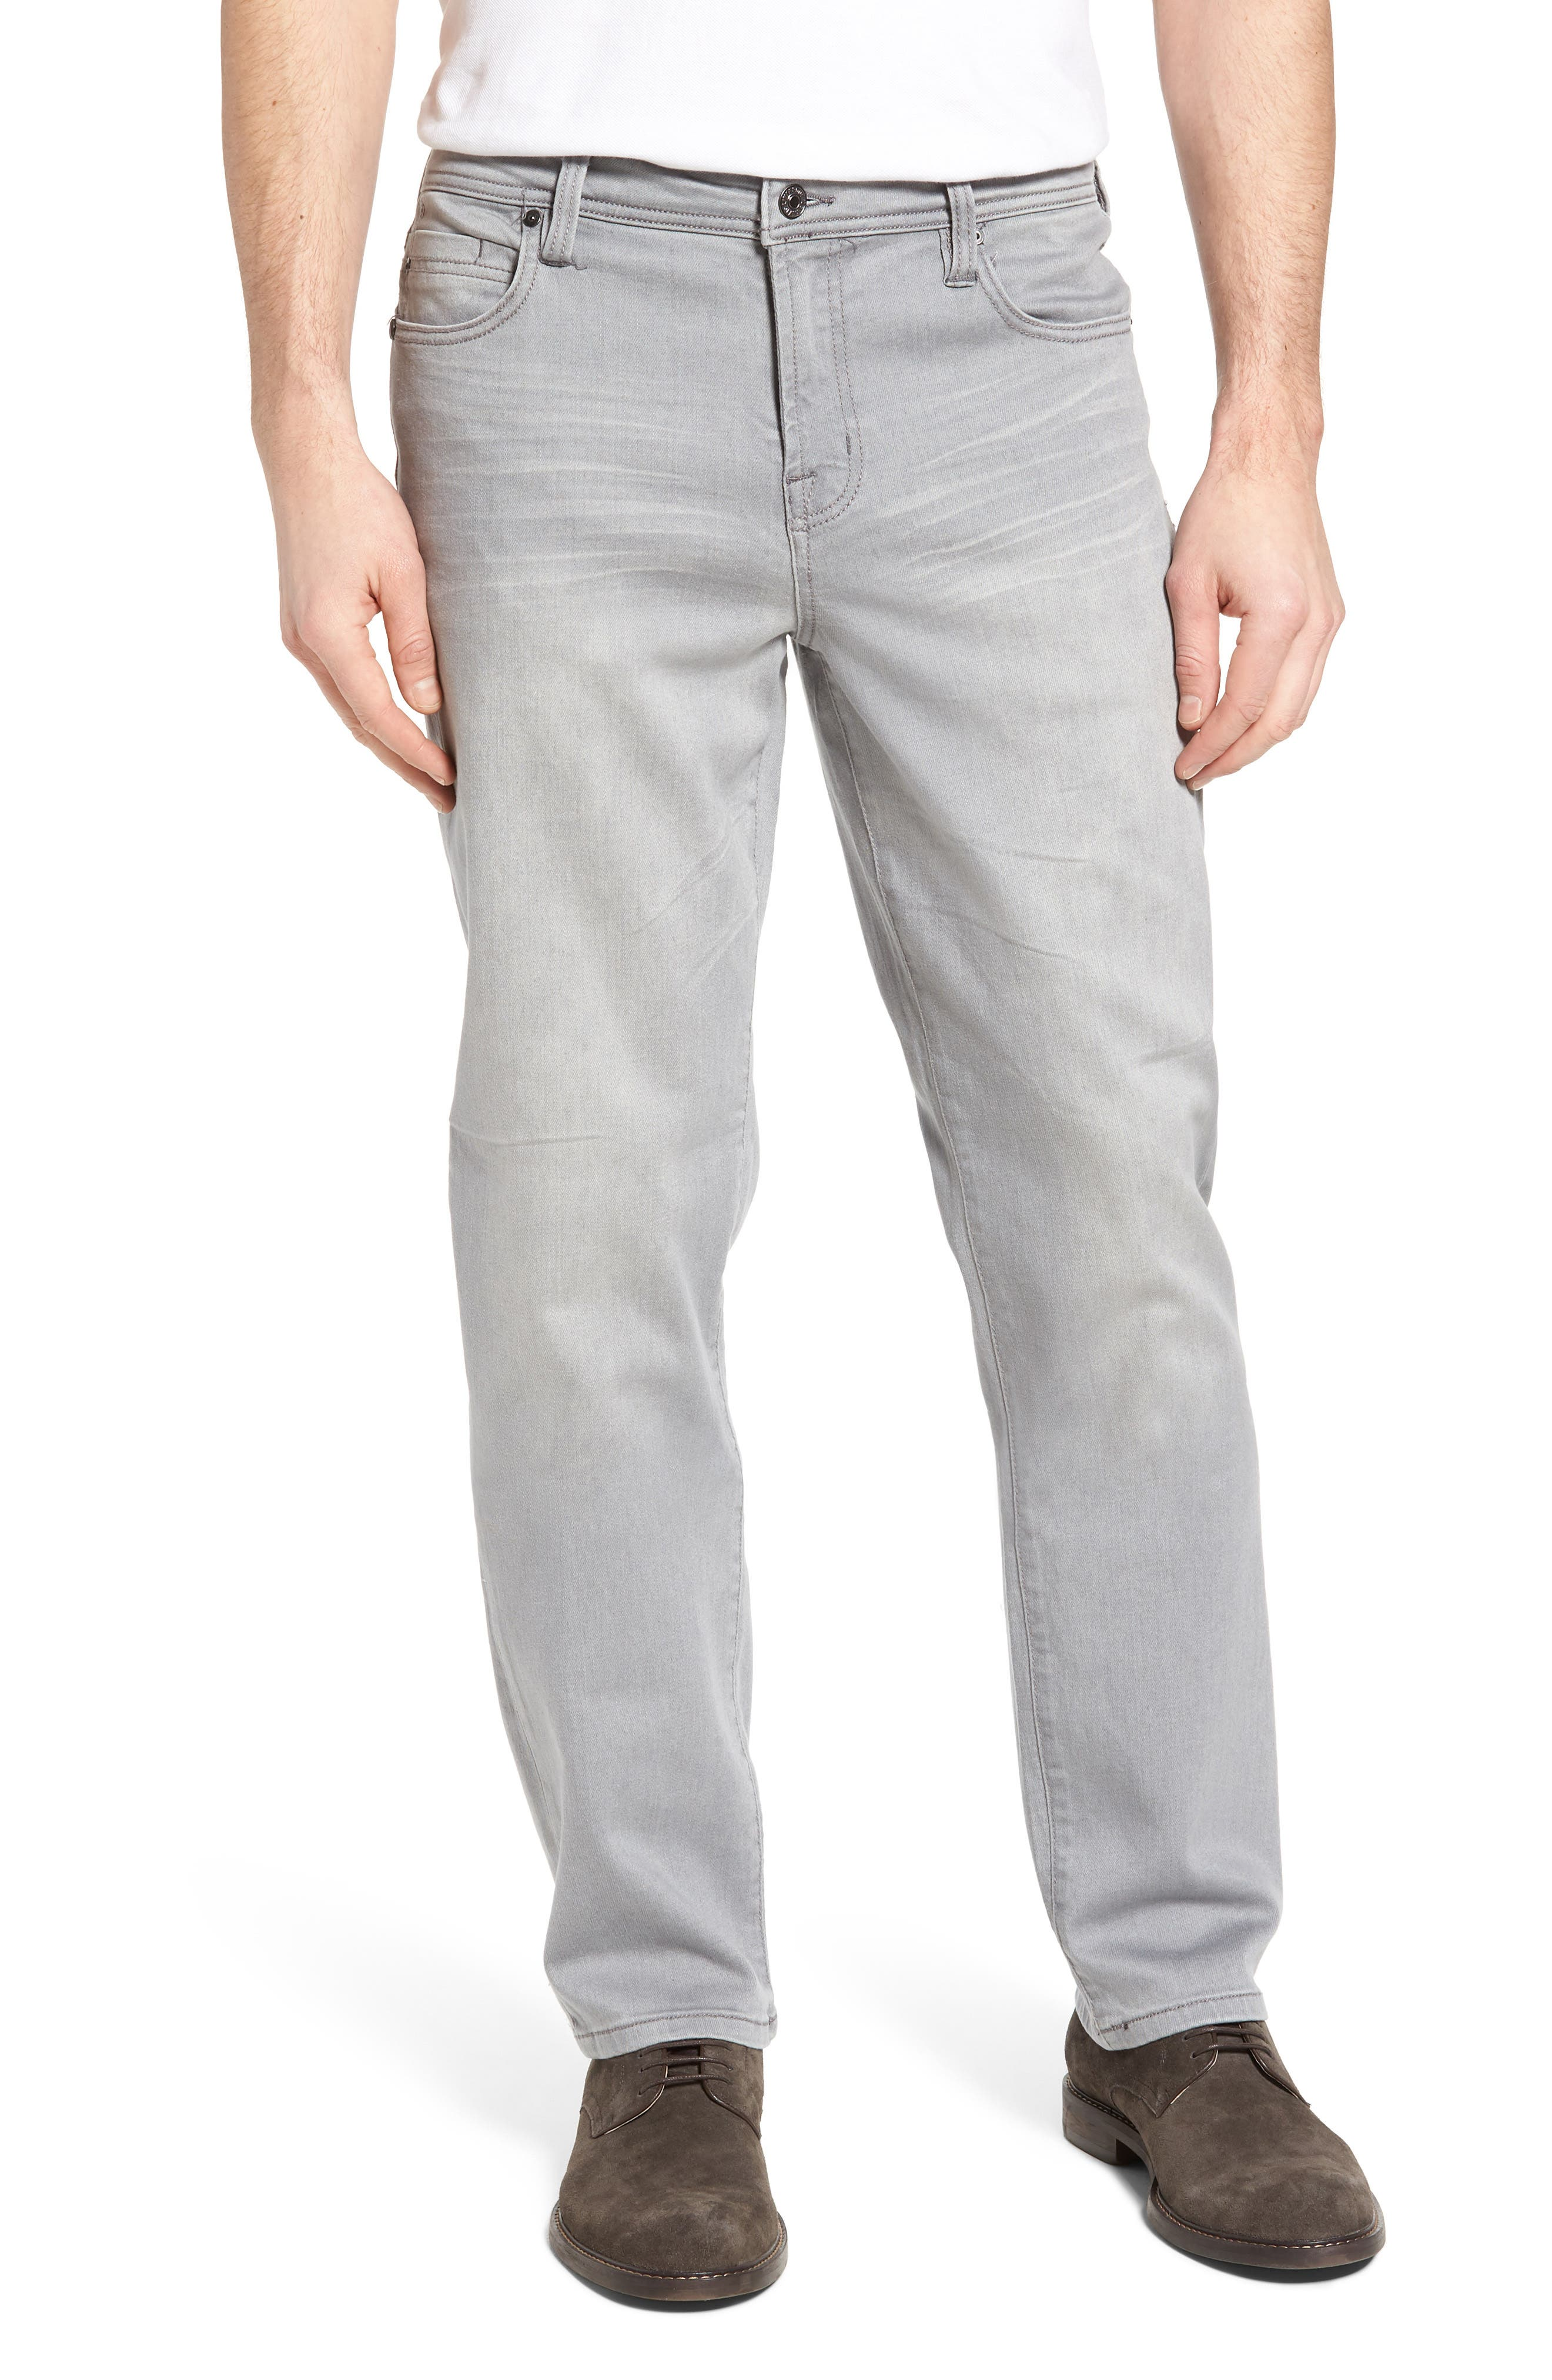 LIVERPOOL Regent Relaxed Straight Leg Jeans, Main, color, COAL MINE DARK